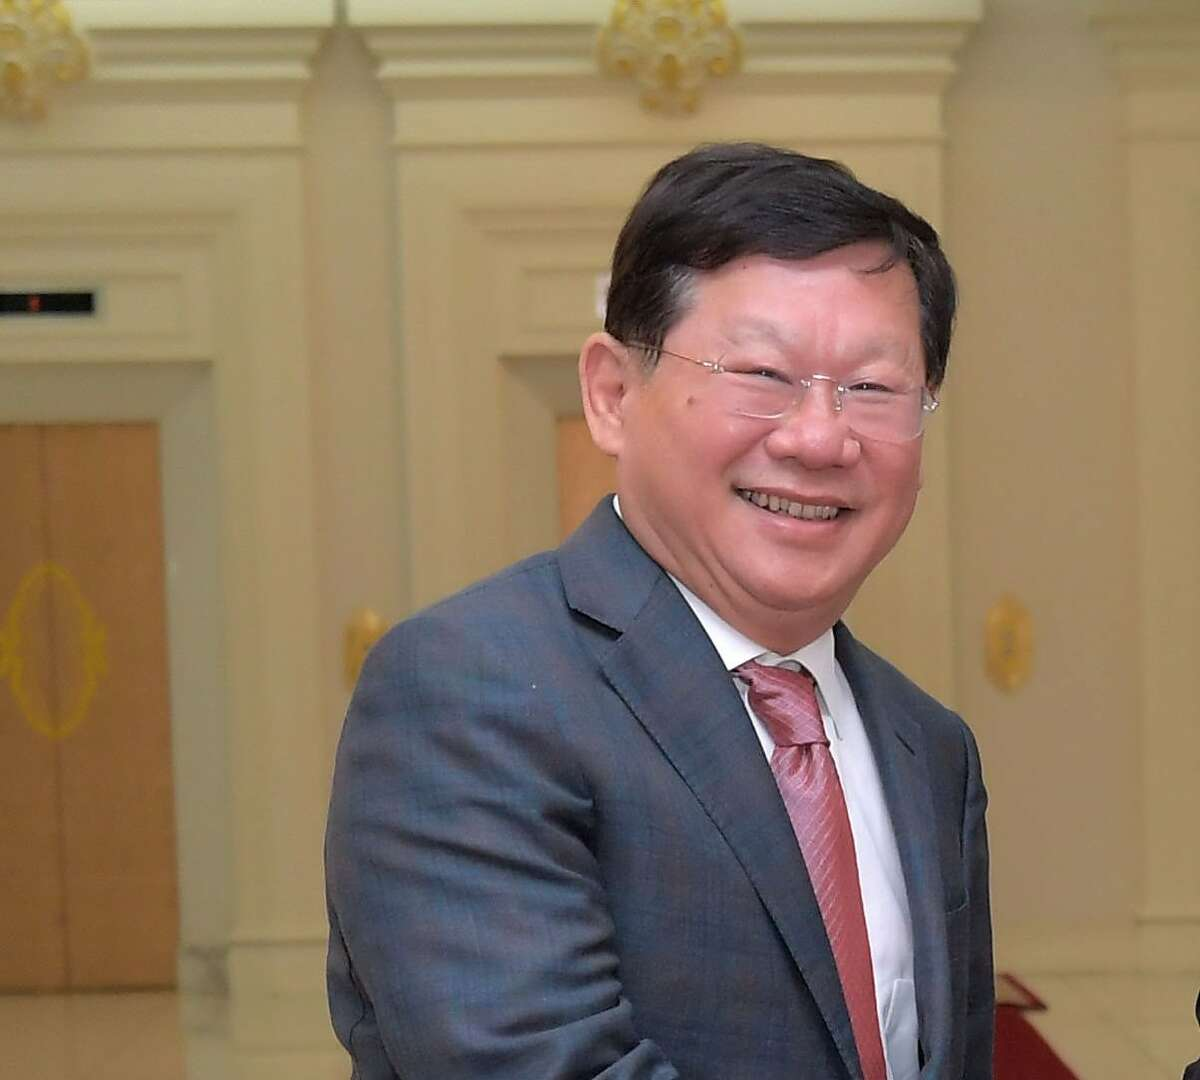 Pictured is Zhang Li, Chairman of Guangzhou R&F Properties, photographed in Phnom Penh, Cambodia, Jan. 4, 2017.